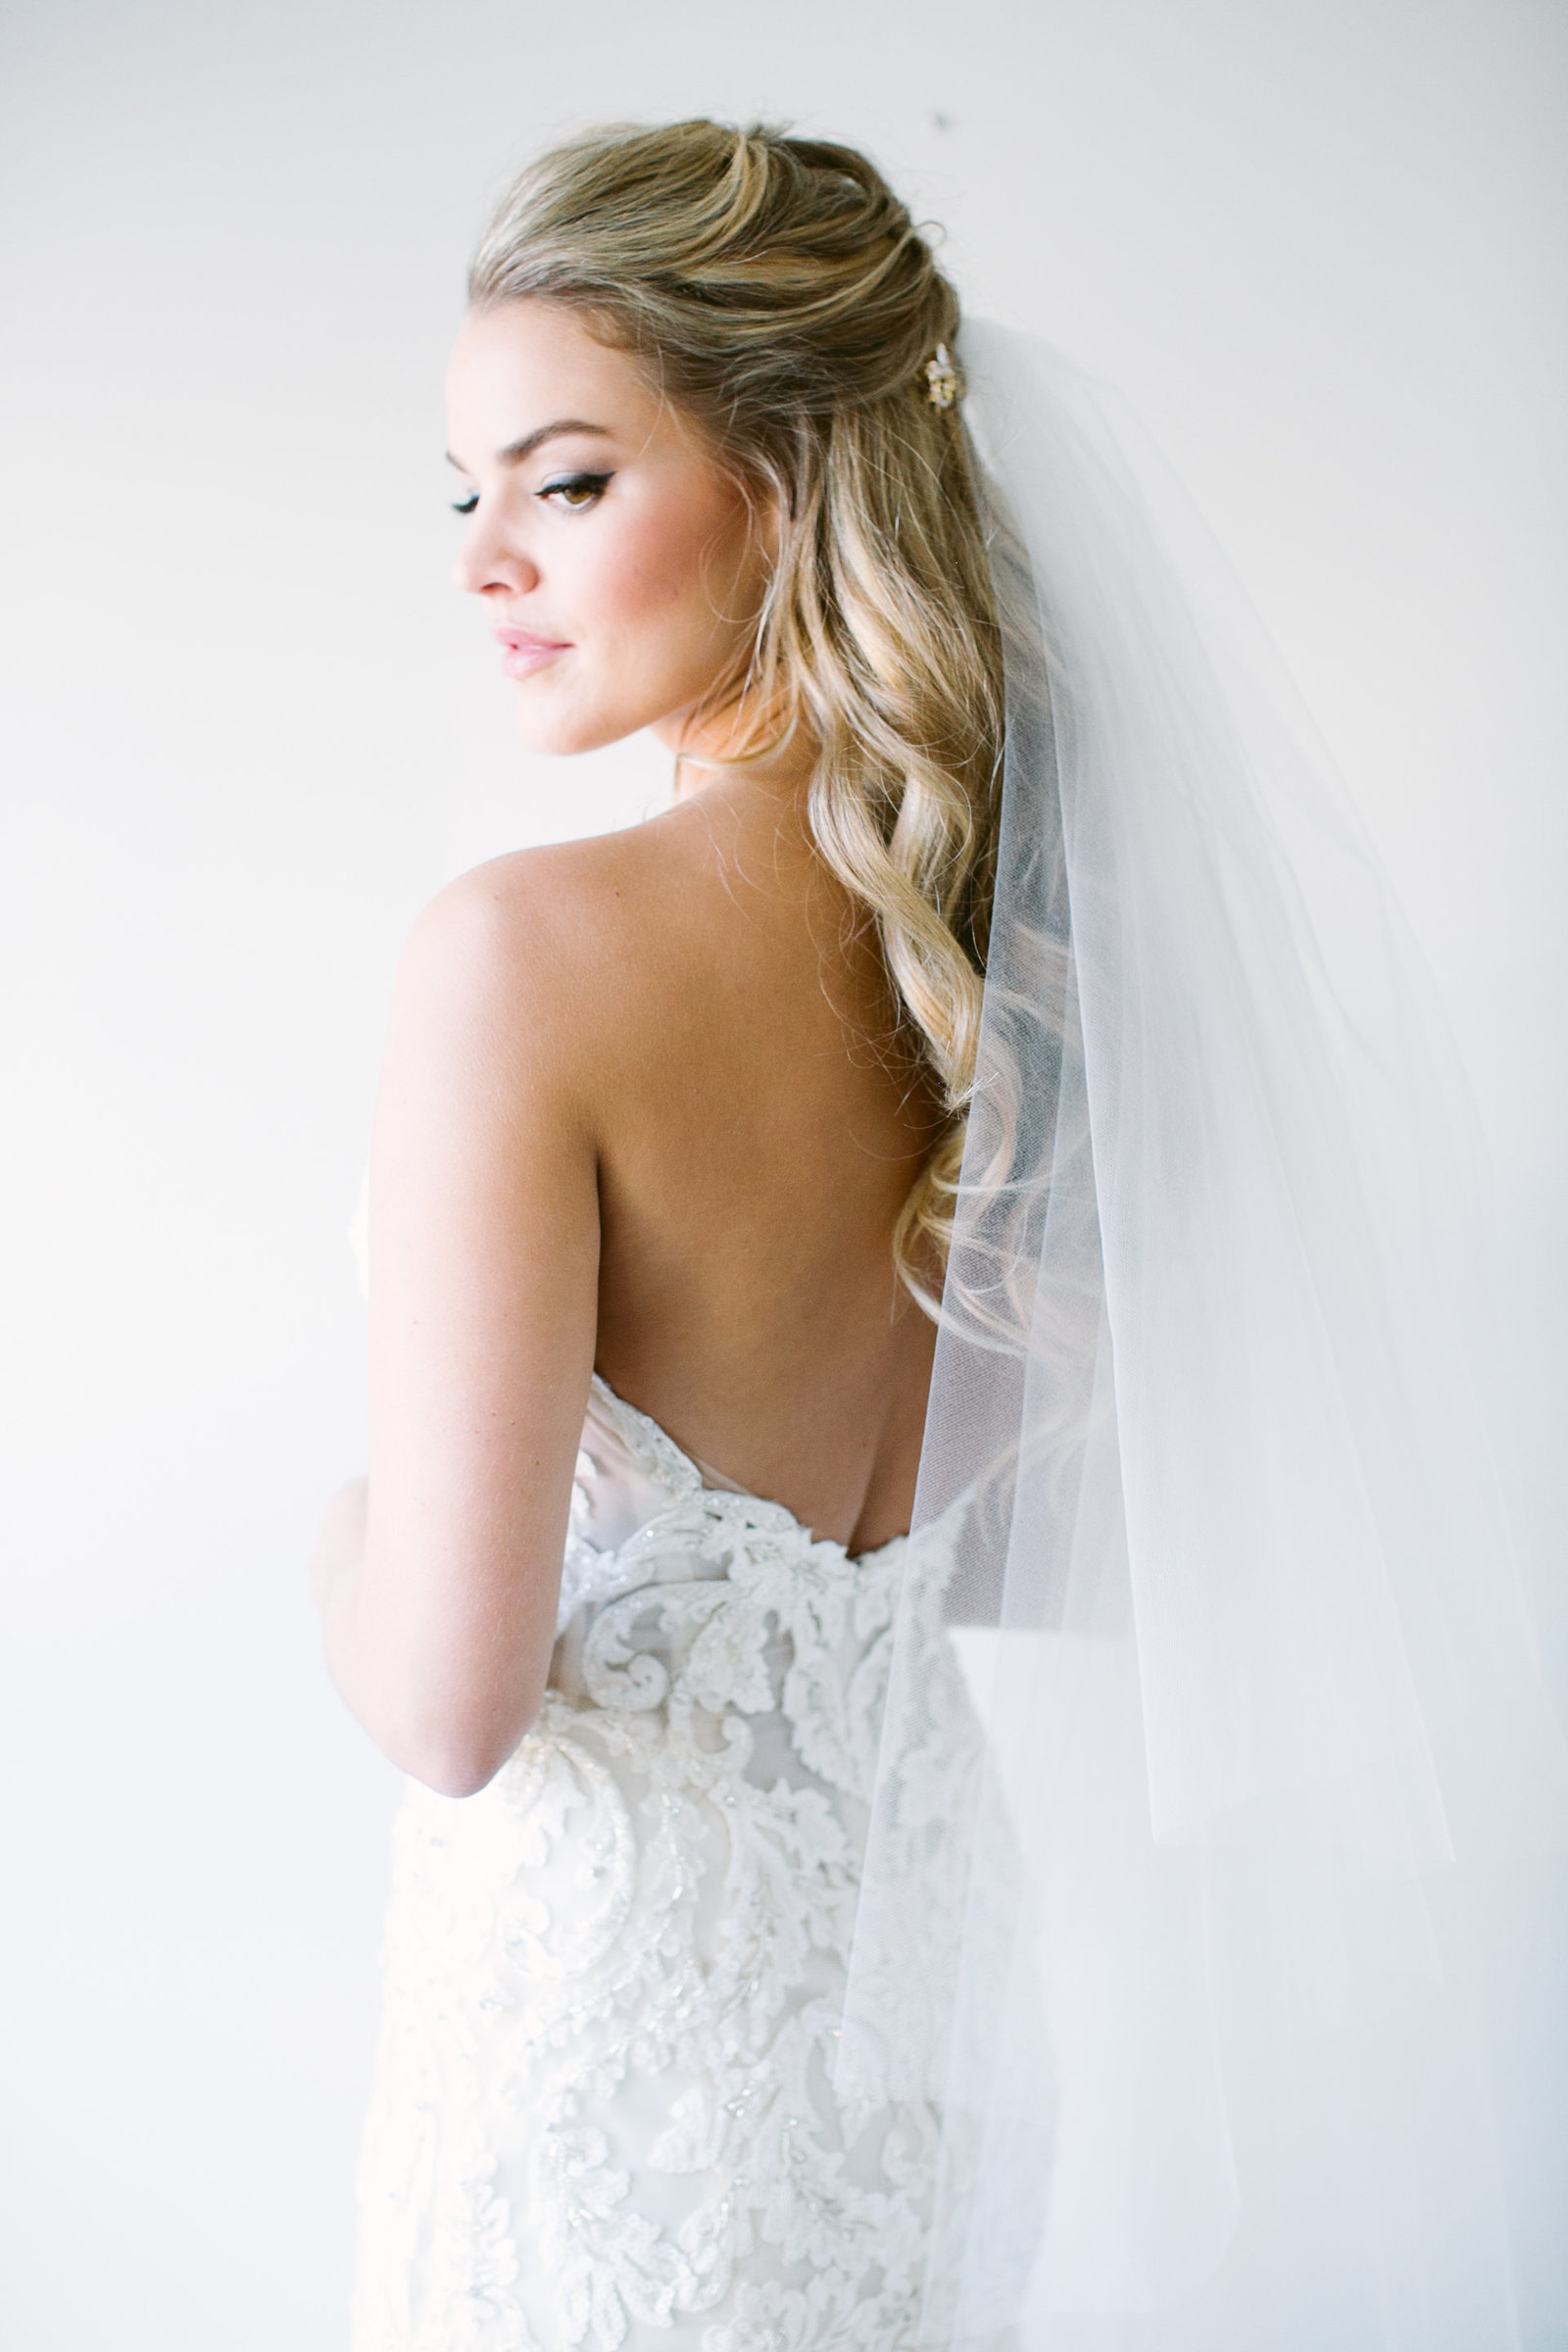 NikkiFerrell_Bachelor_Wedding_Madison_Sanders_Events_Kansas_City_Planner-154